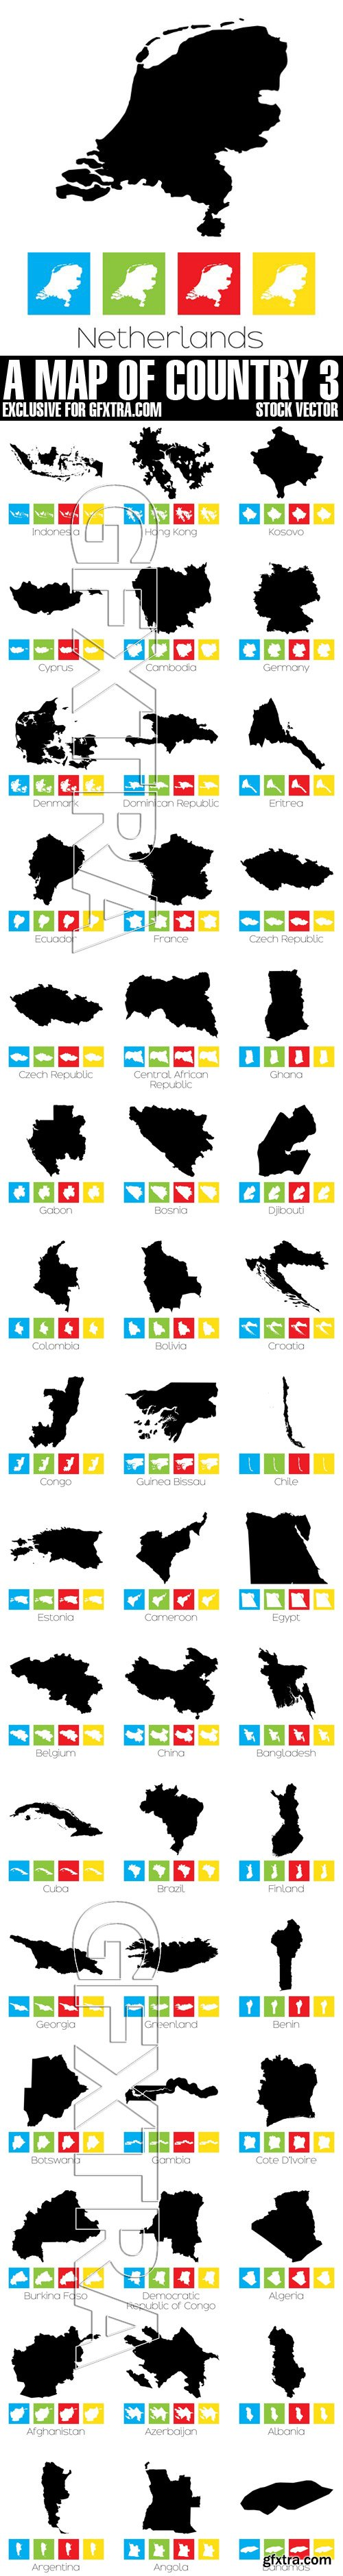 Stock Vectors - A Map Of Country 3